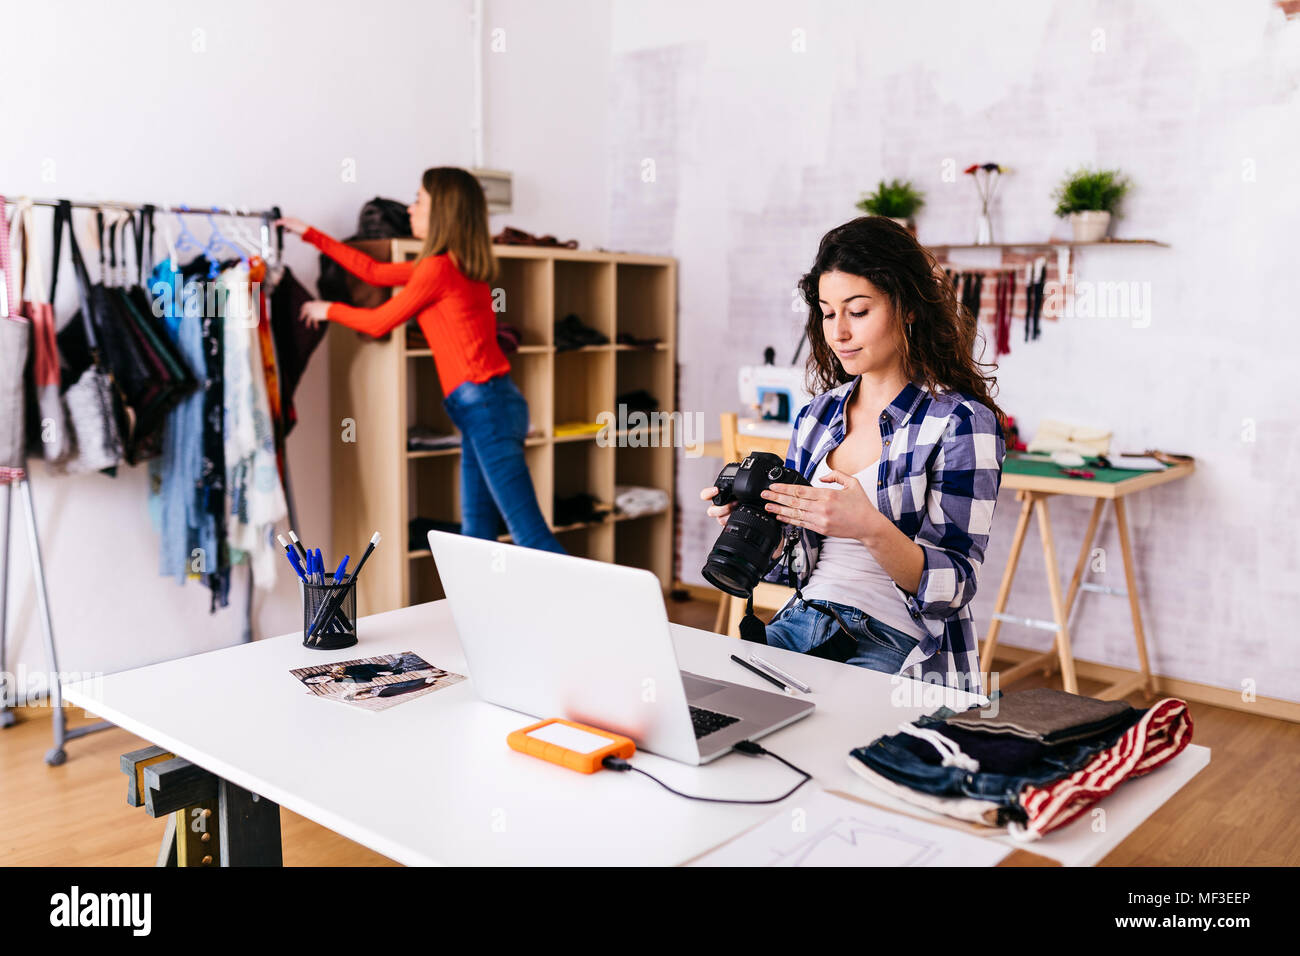 Fashion designer with camera and laptop in studio - Stock Image